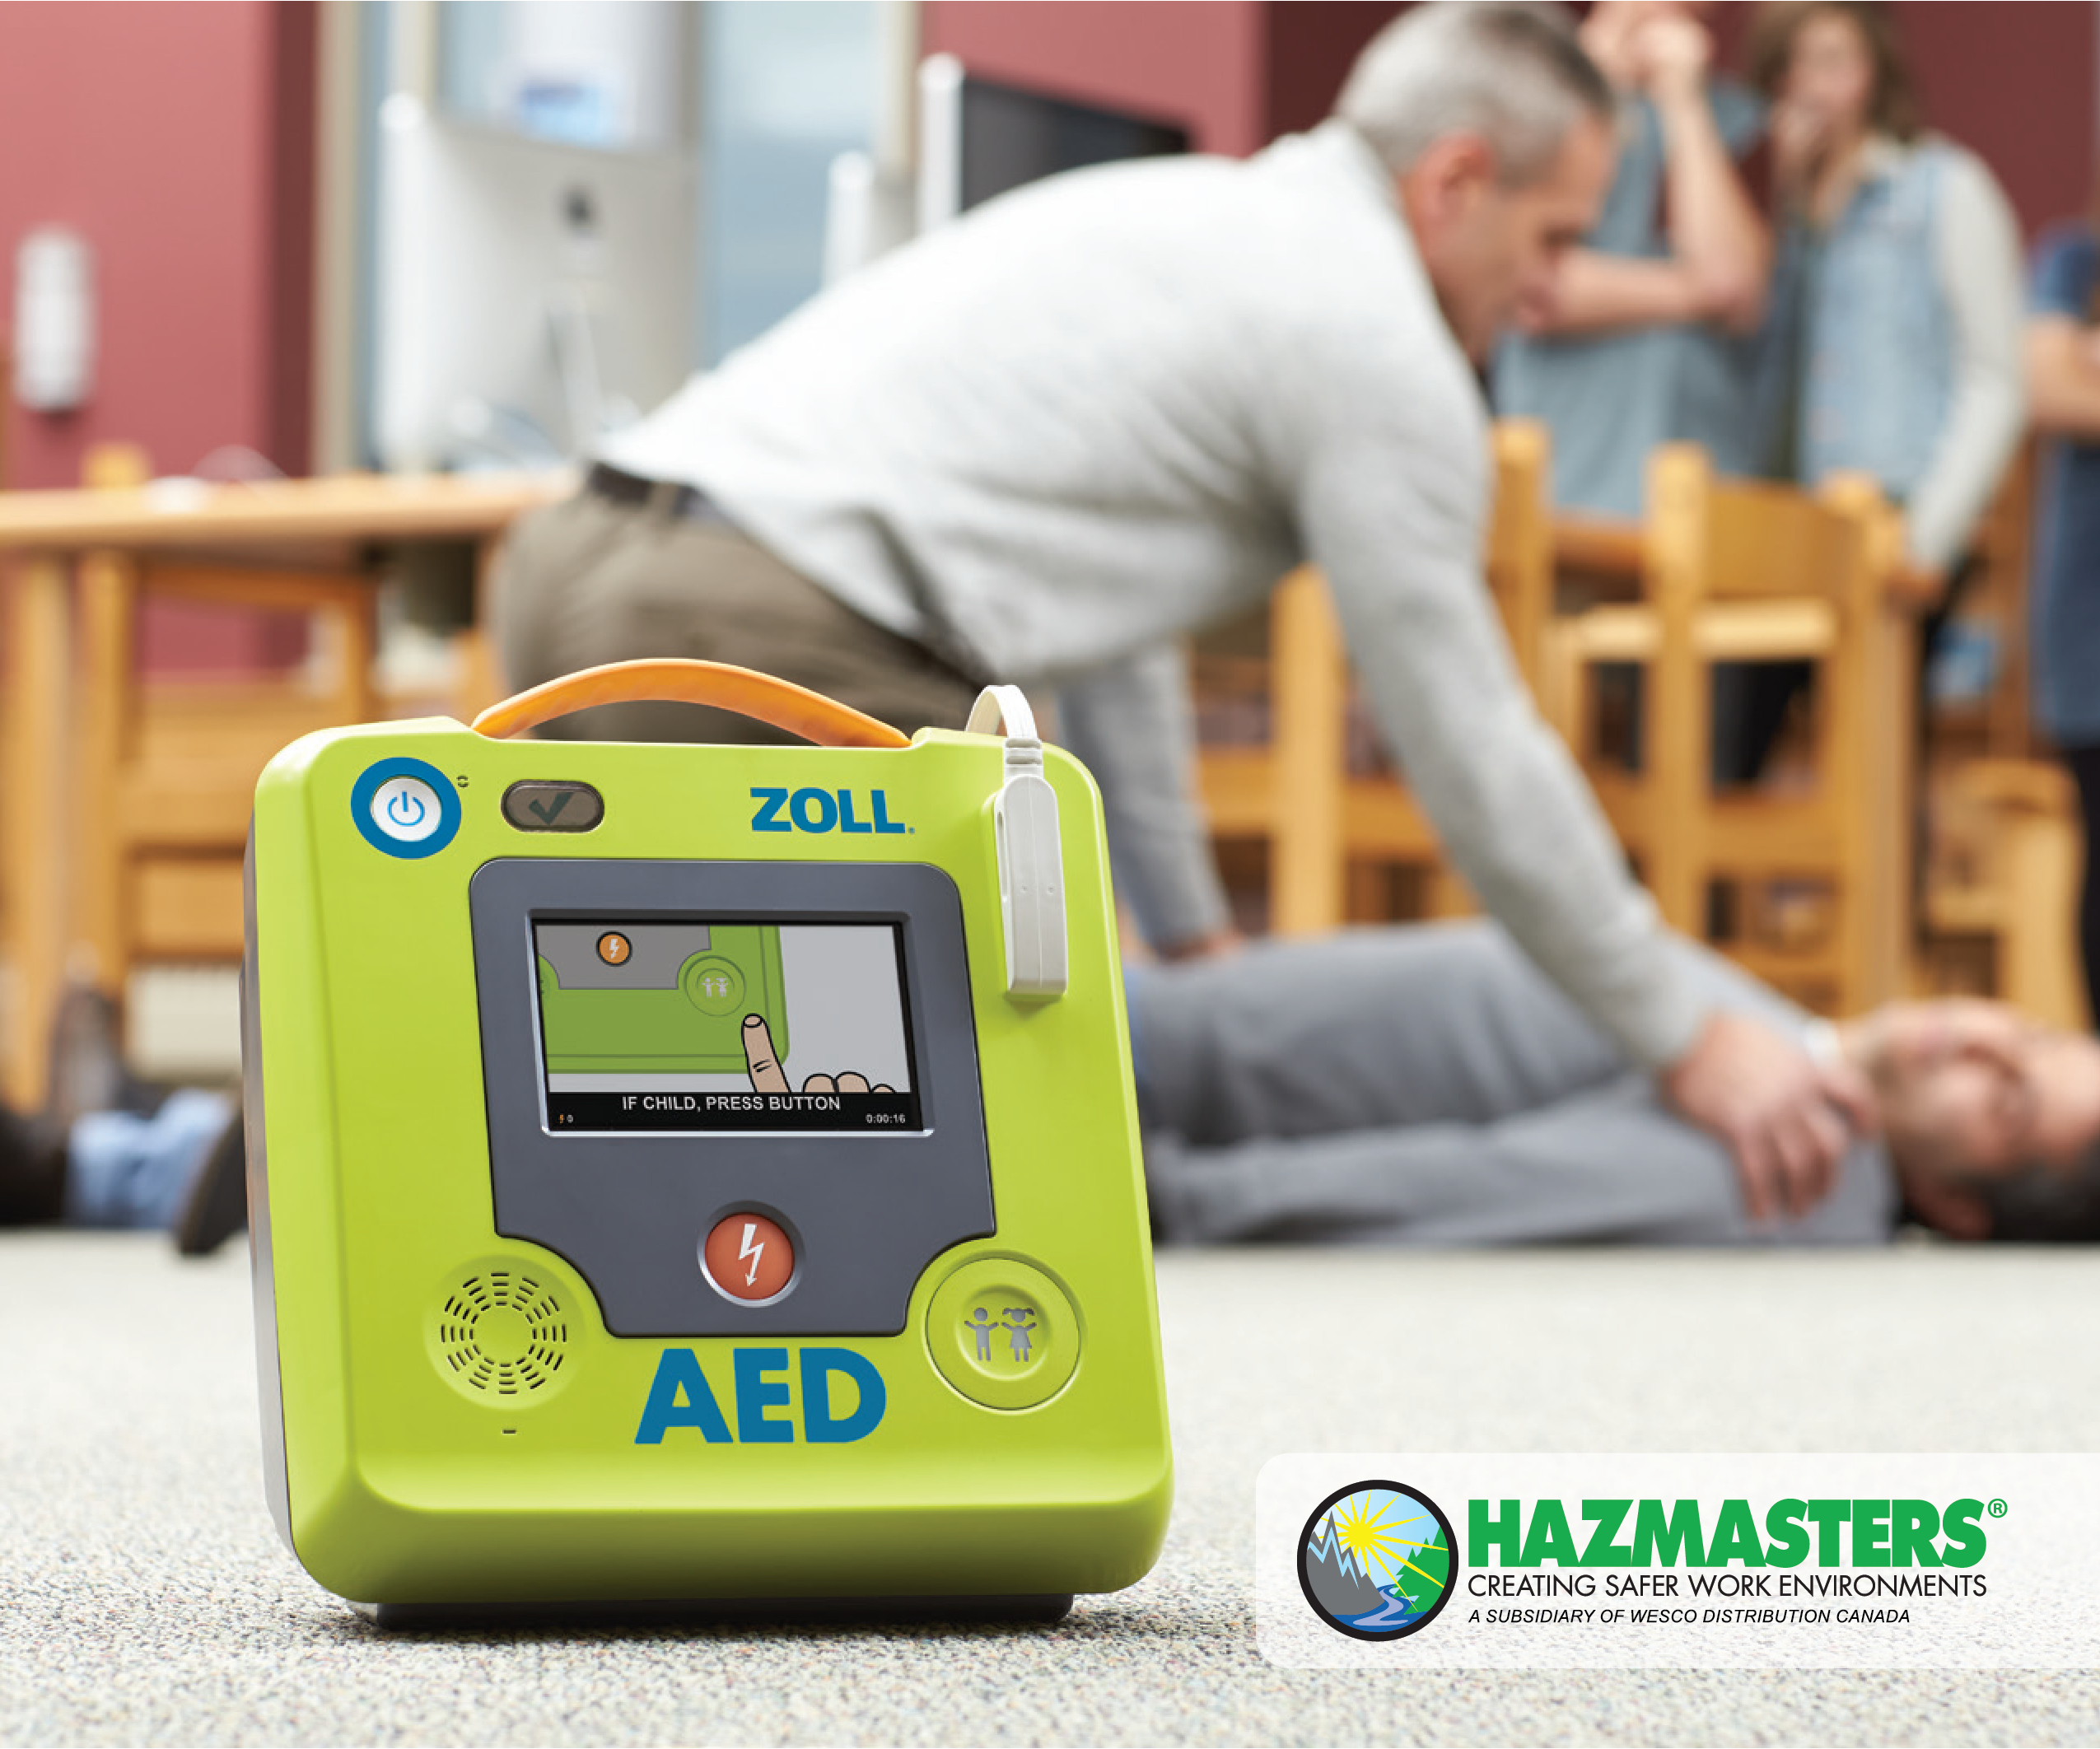 Hazmasters has partnered with Zoll Medical!